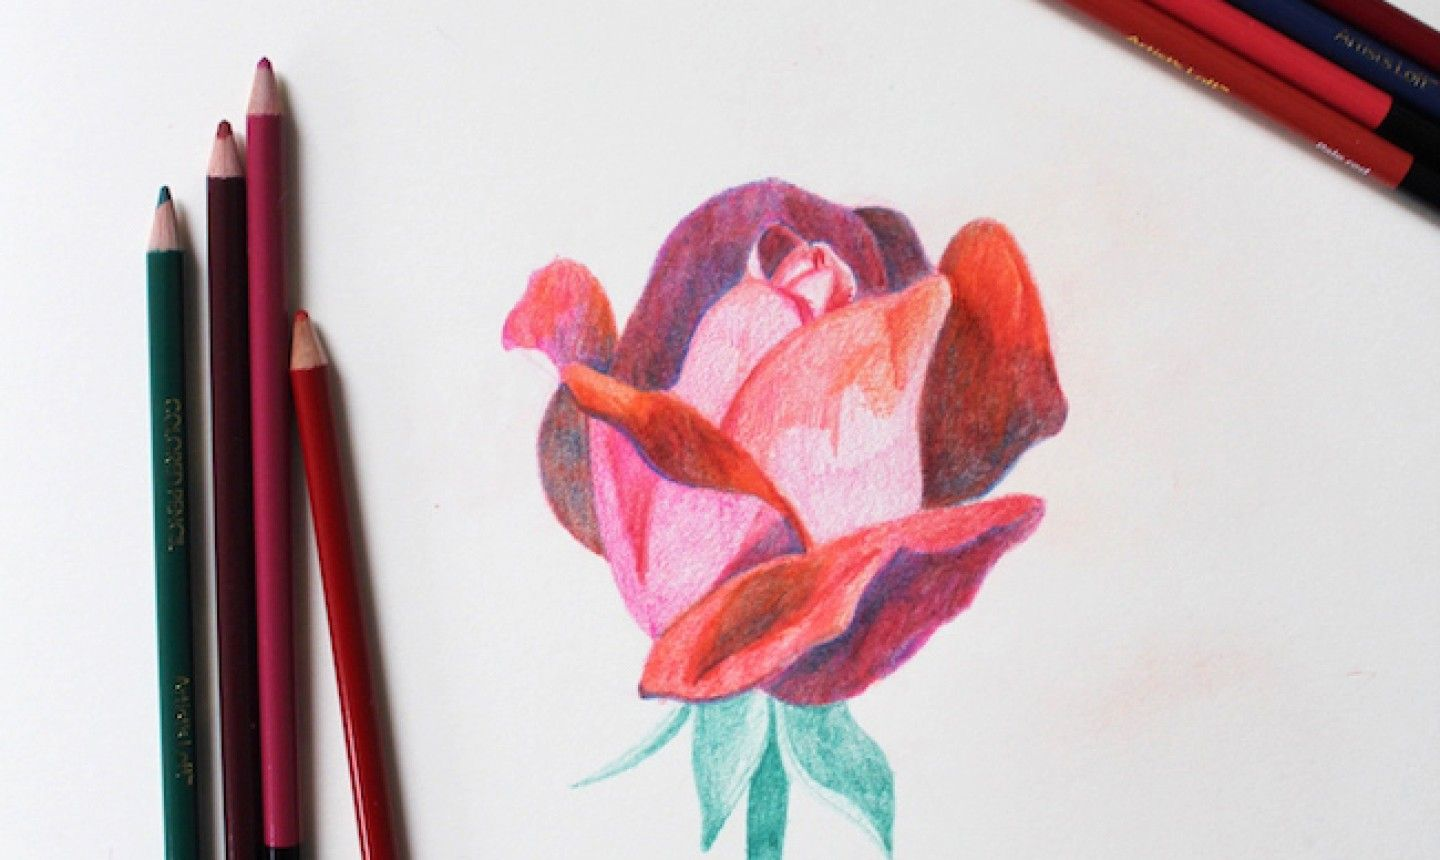 Learn to draw this rose step by step coloured pencils colored pencil artwork